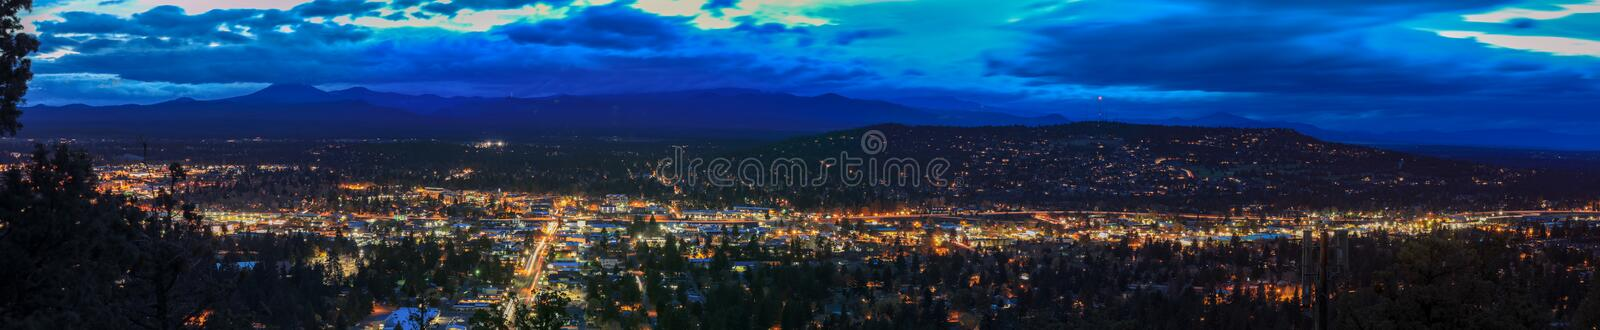 Panorama, as seen from Bend from Pilot Butte Neighborhood Park, Oregon. Uniteds states stock photo